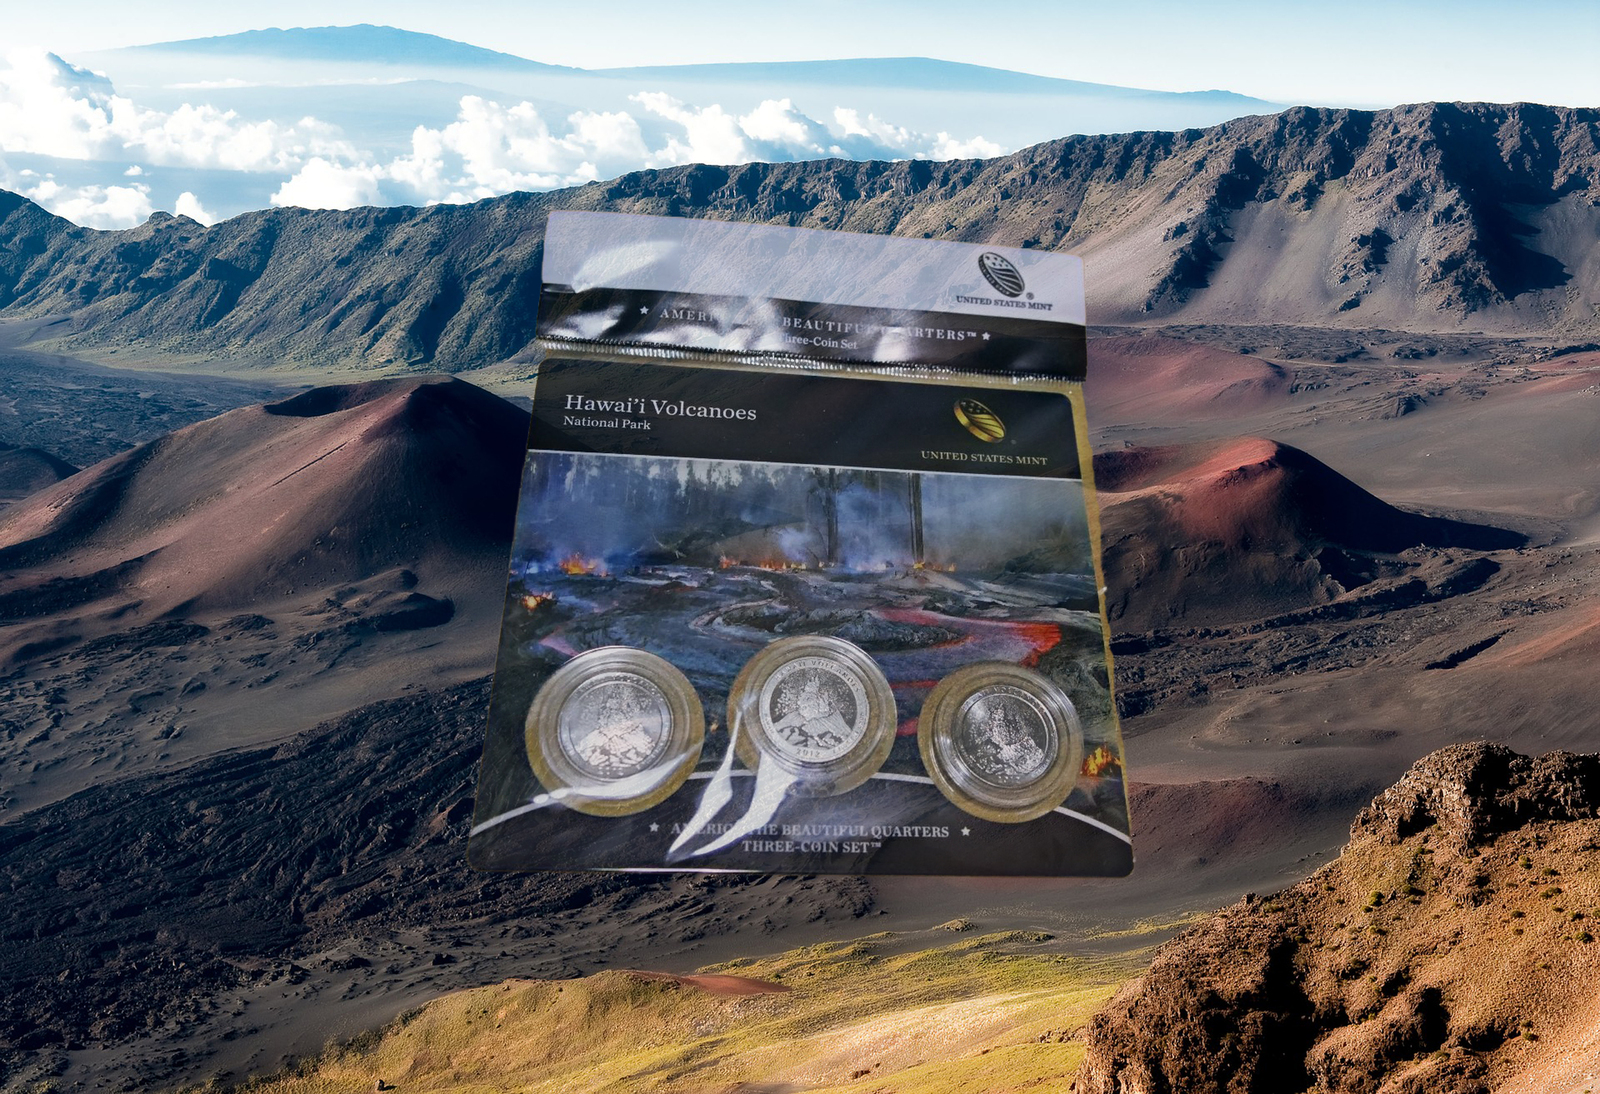 Primary image for 2012 US Mint Hawaii Volcanoes ATB Quarters 3 Coin Set Sealed Hard To Find - New